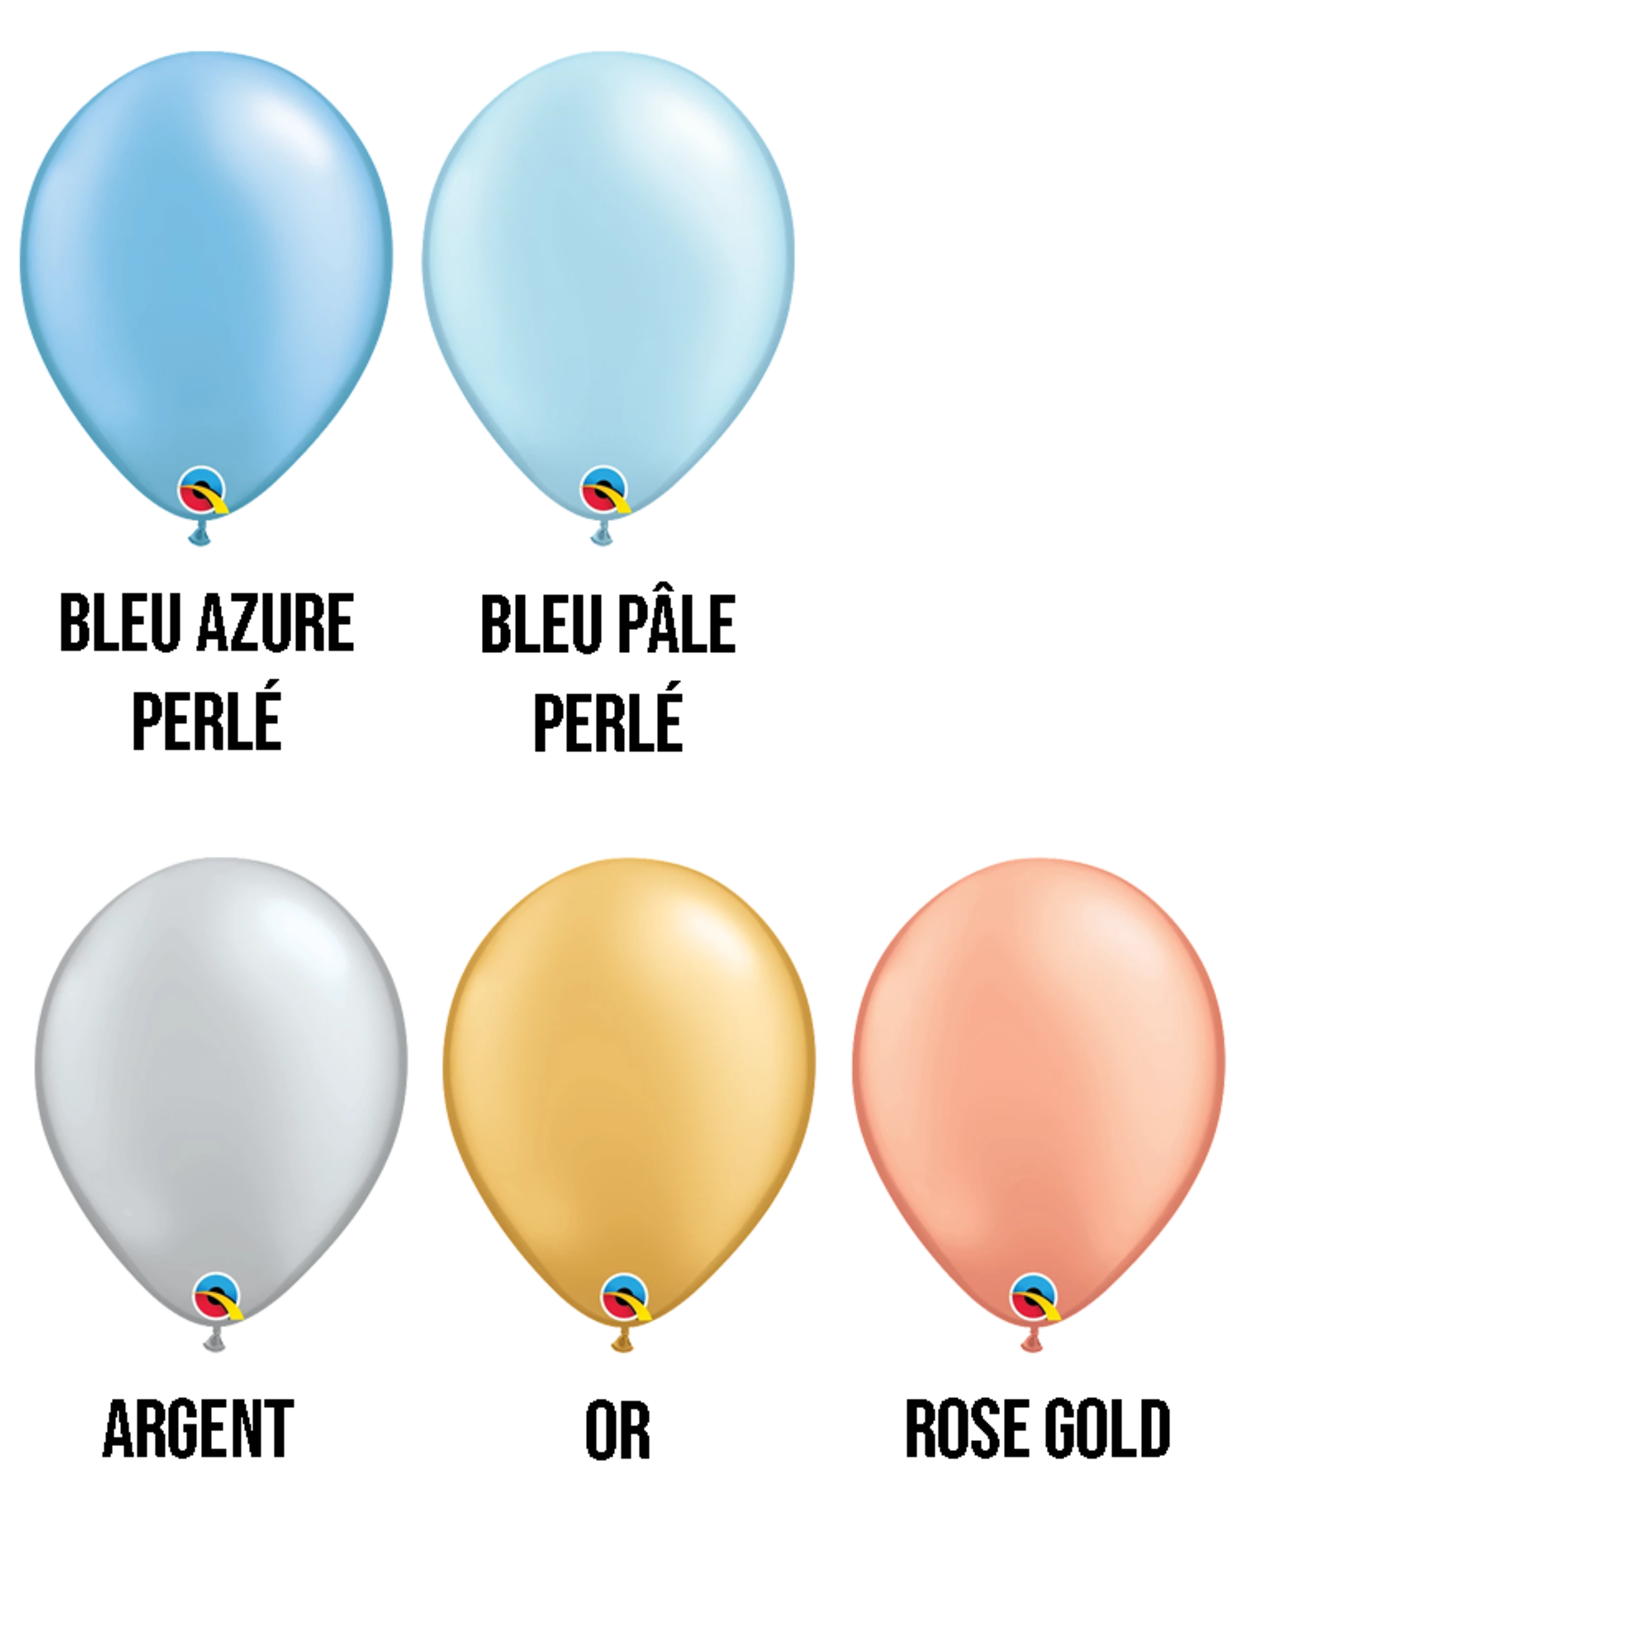 PARTY SHOP RADIANT PEARL COLORS #3 - 11 INCH LATEX BALLOONS